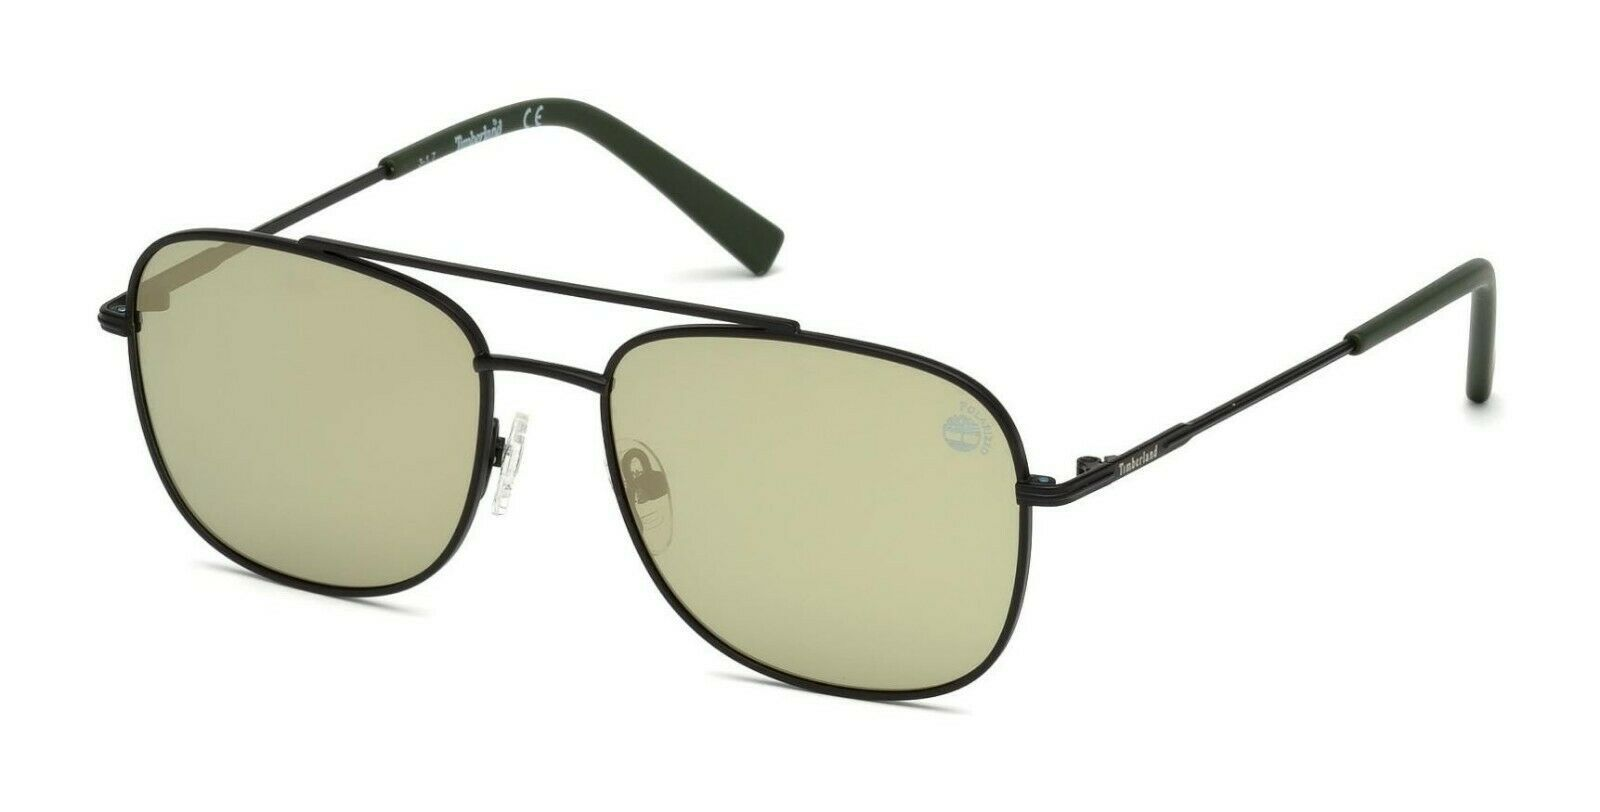 Primary image for Timberland Men's Sunglasses TB 9122 02R Matte Black / Green Polarized 55mm NEW